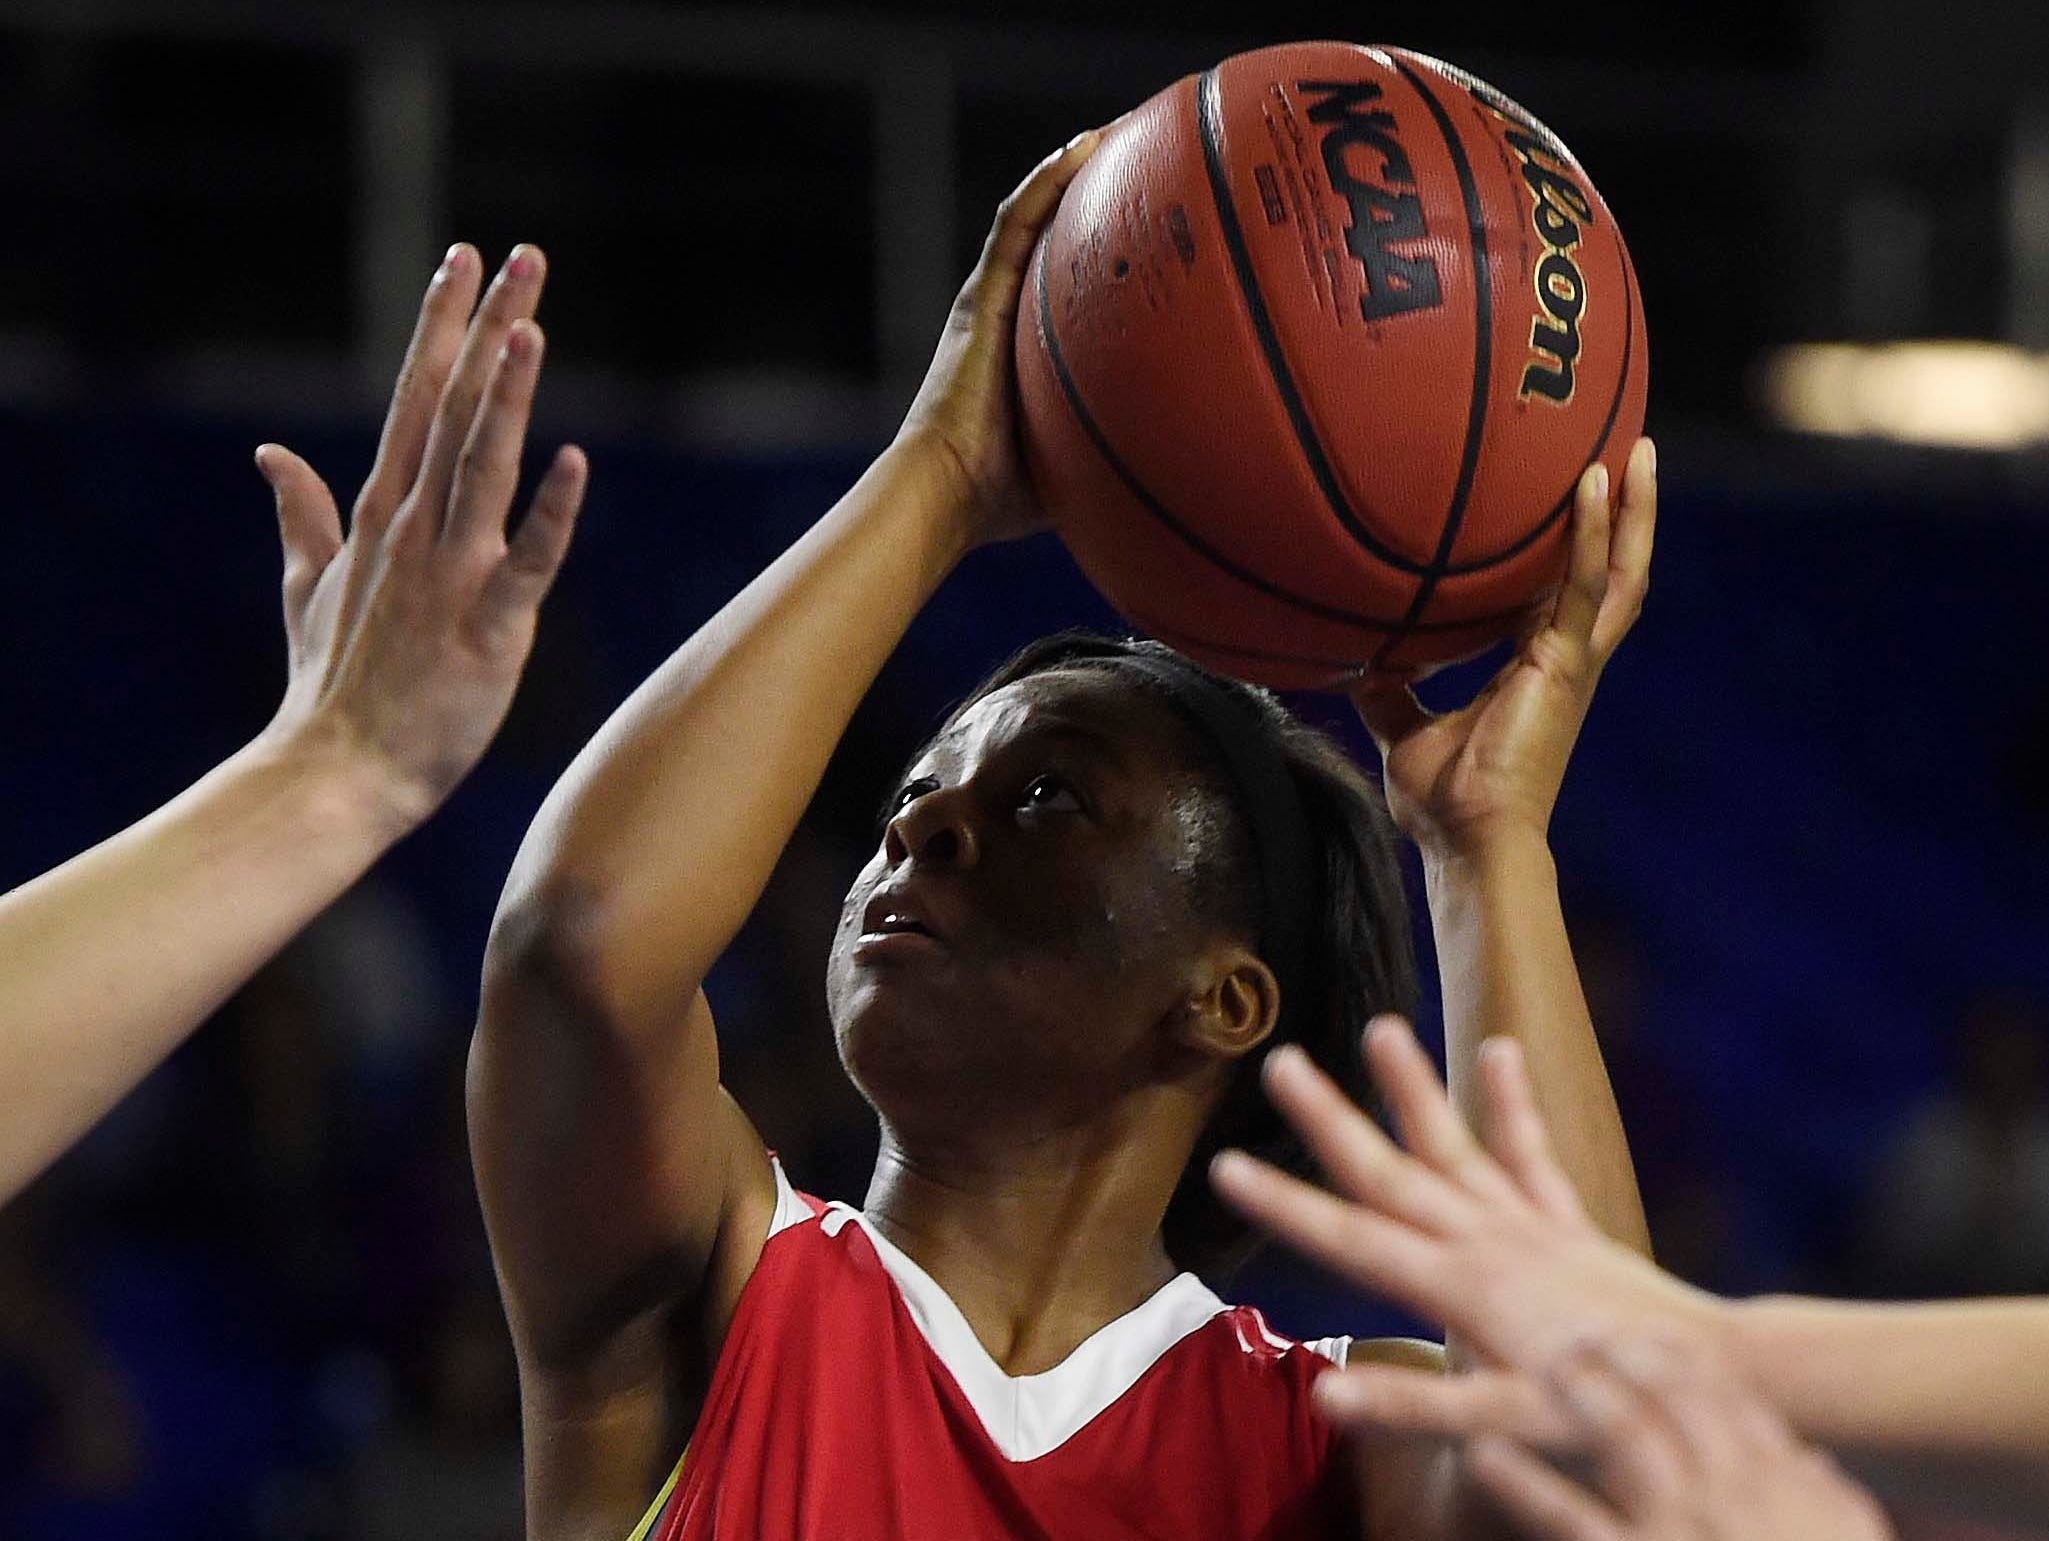 East's Kyra Trice (5) drives the lane as East Nashville wins 47-35 in the Division I Class AA Girl's basketball tournament at the Murphy Center on MTSU's campus March 10, 2016 in Murfreesboro, Tenn.